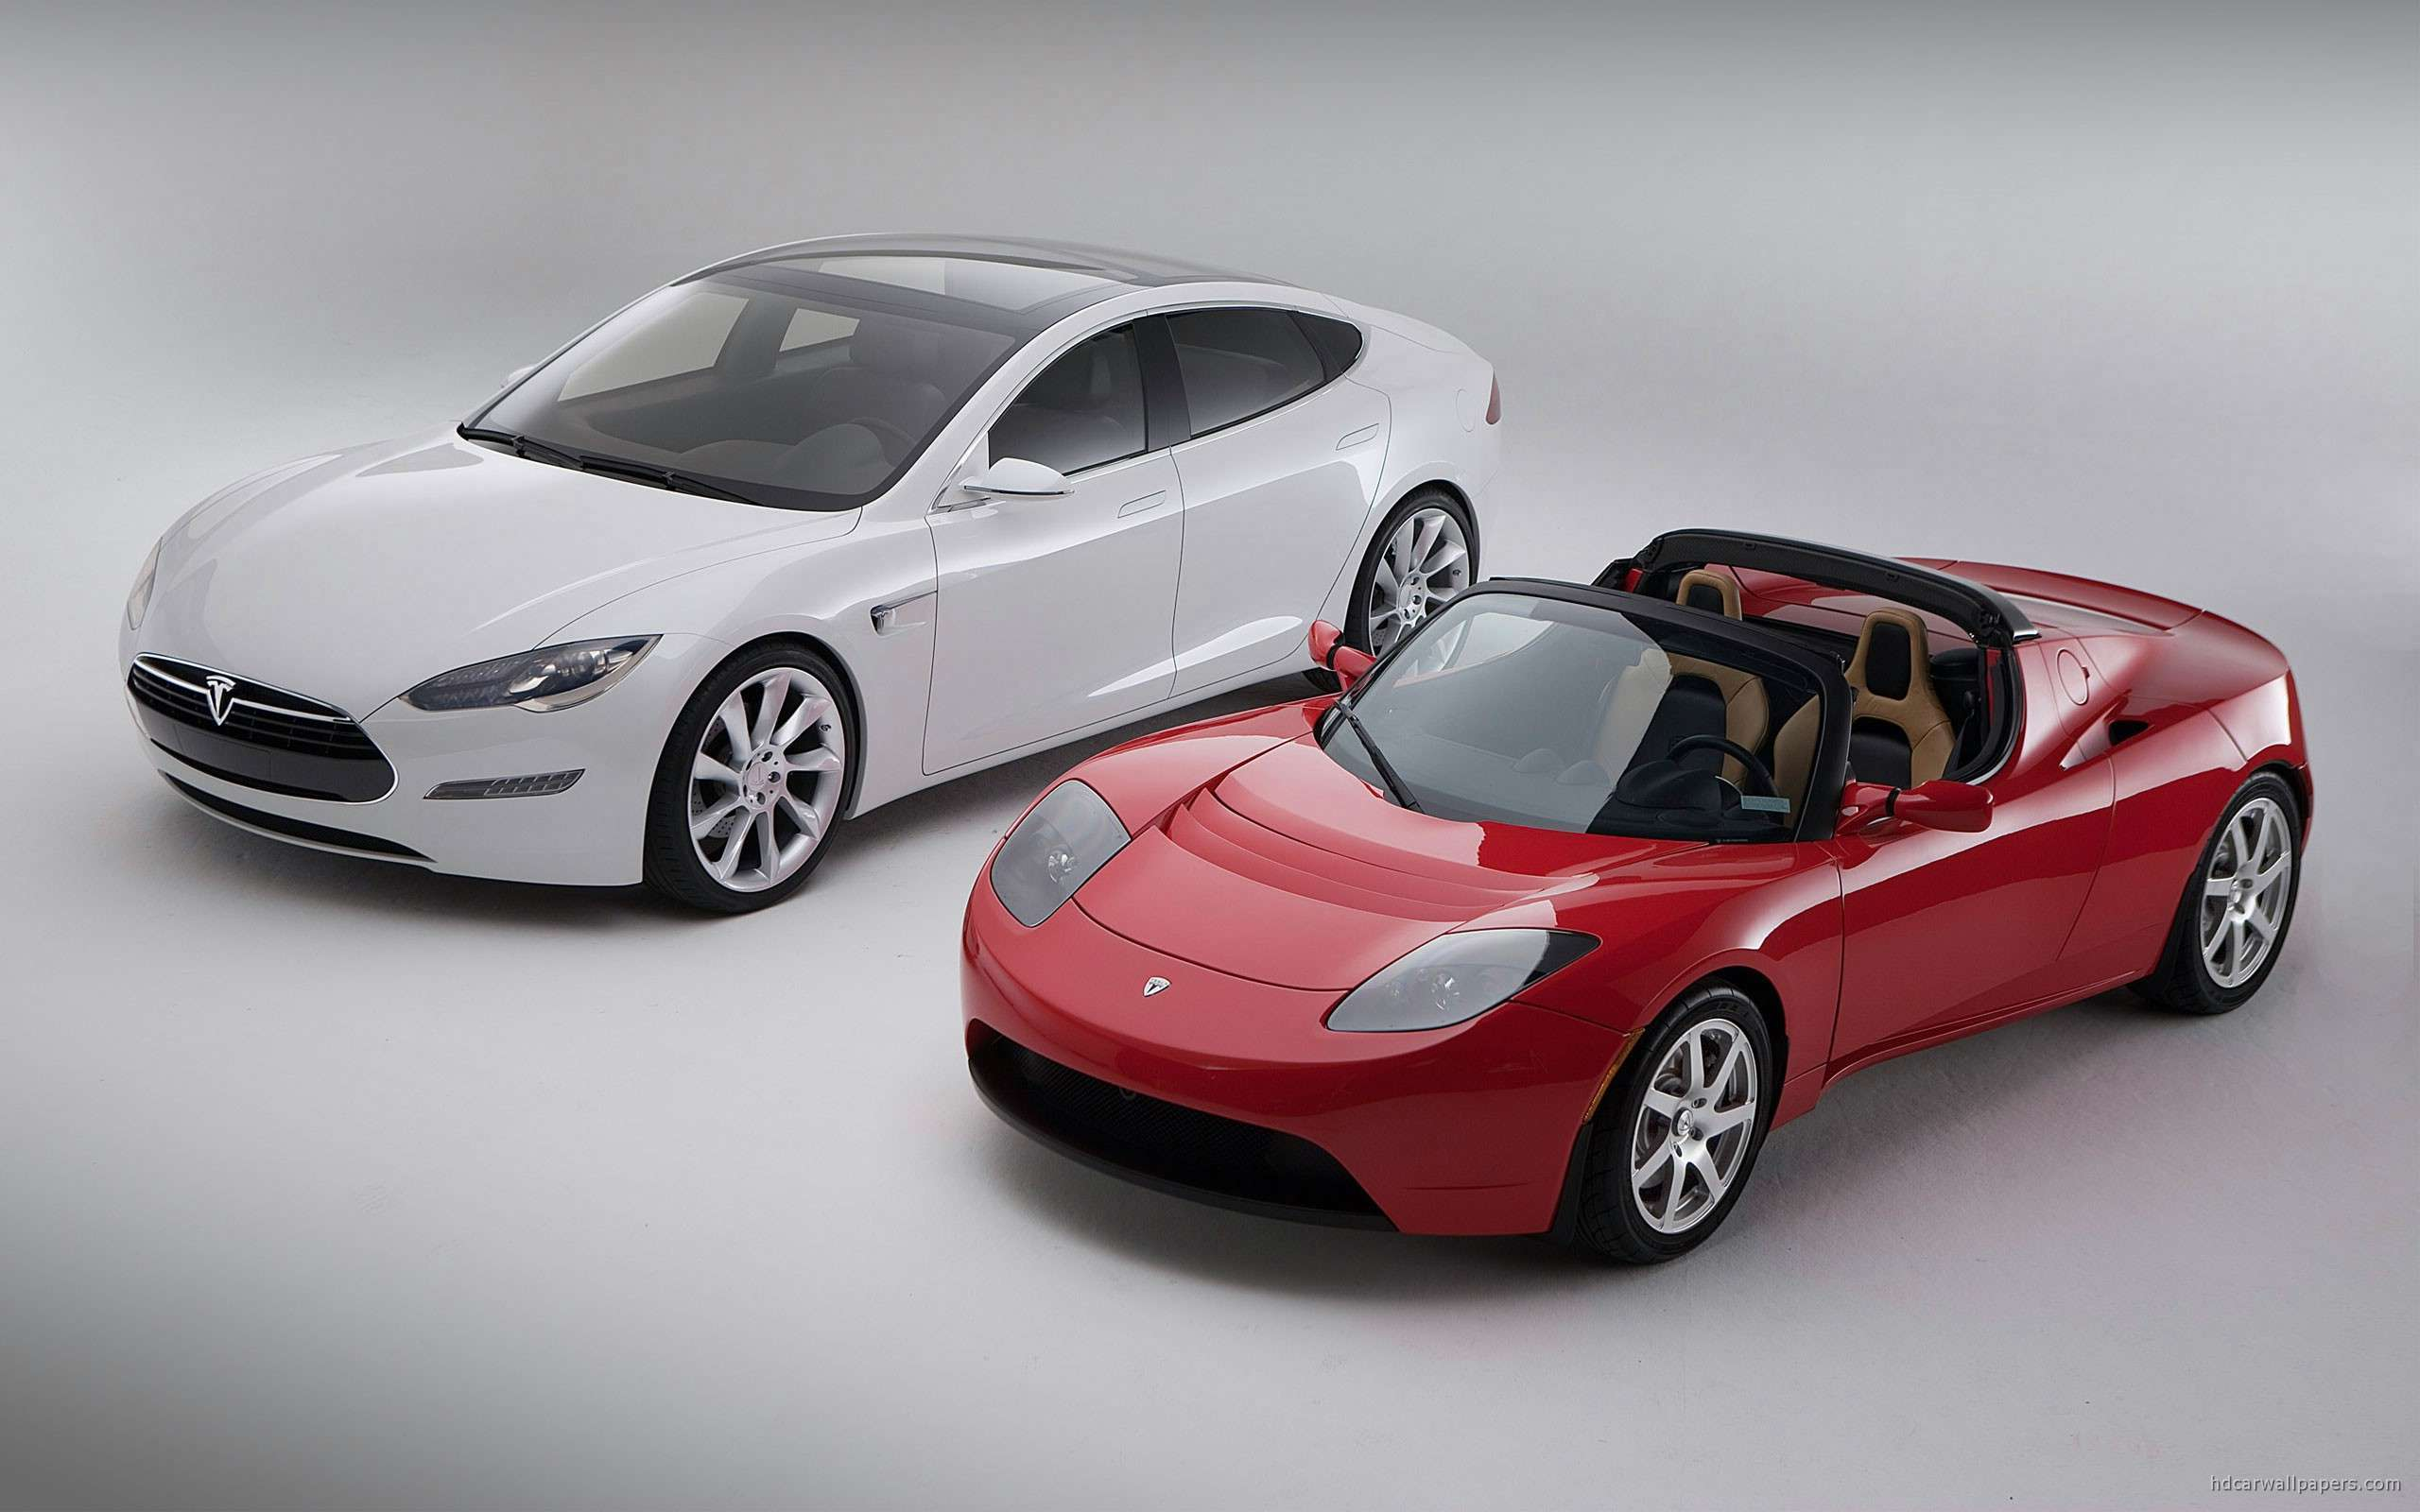 View Of Tesla Model S Cars Hd Wallpapers Hd Car Wallpapers 2560x1600